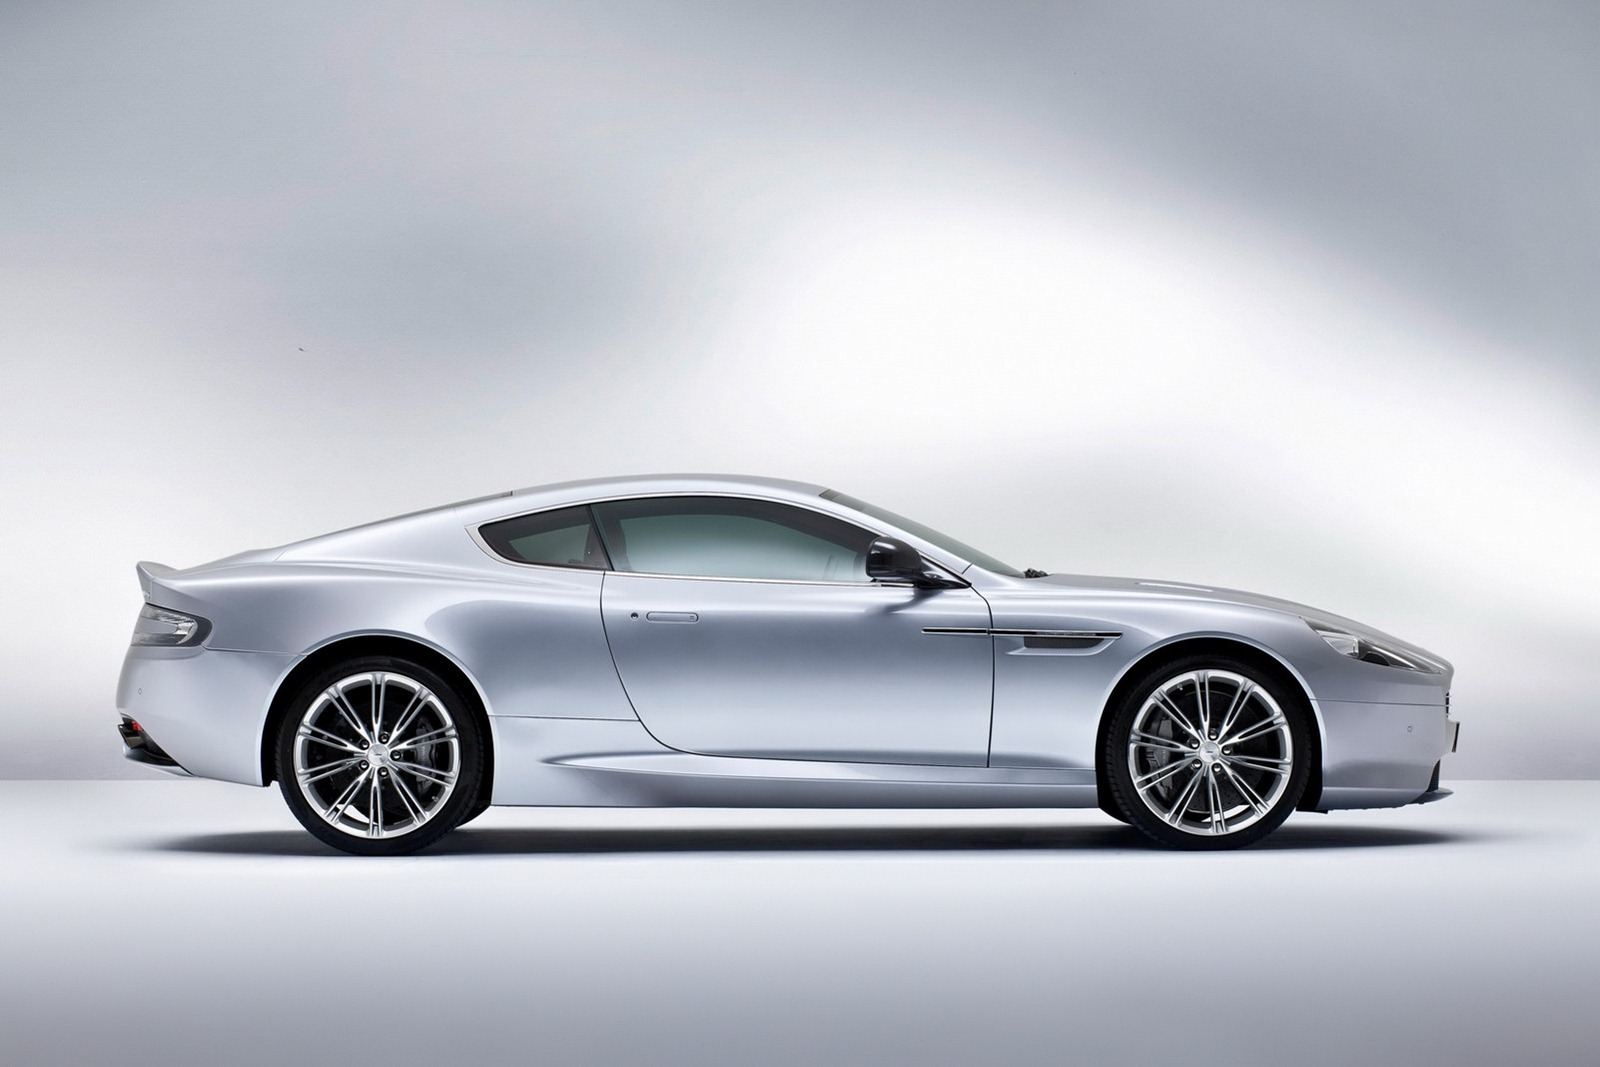 db9 – Automobile Wallpapers, in HD | Iphone | Android| Desktop 6 Wallpaper